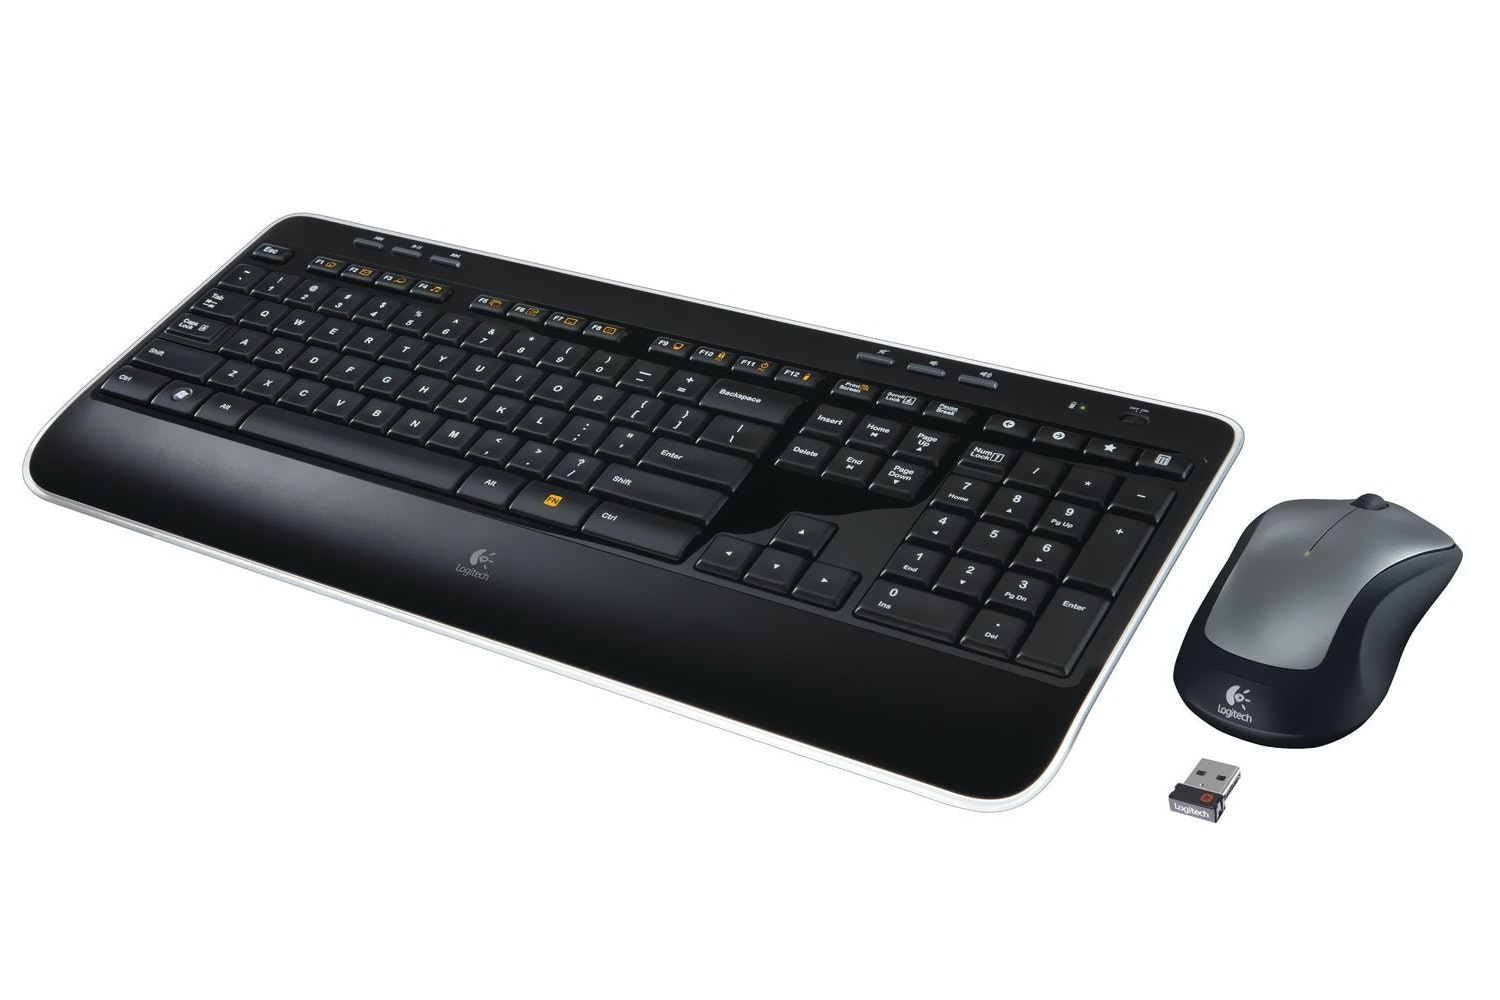 Logitech MK520 Cordless Desktop Keyboard